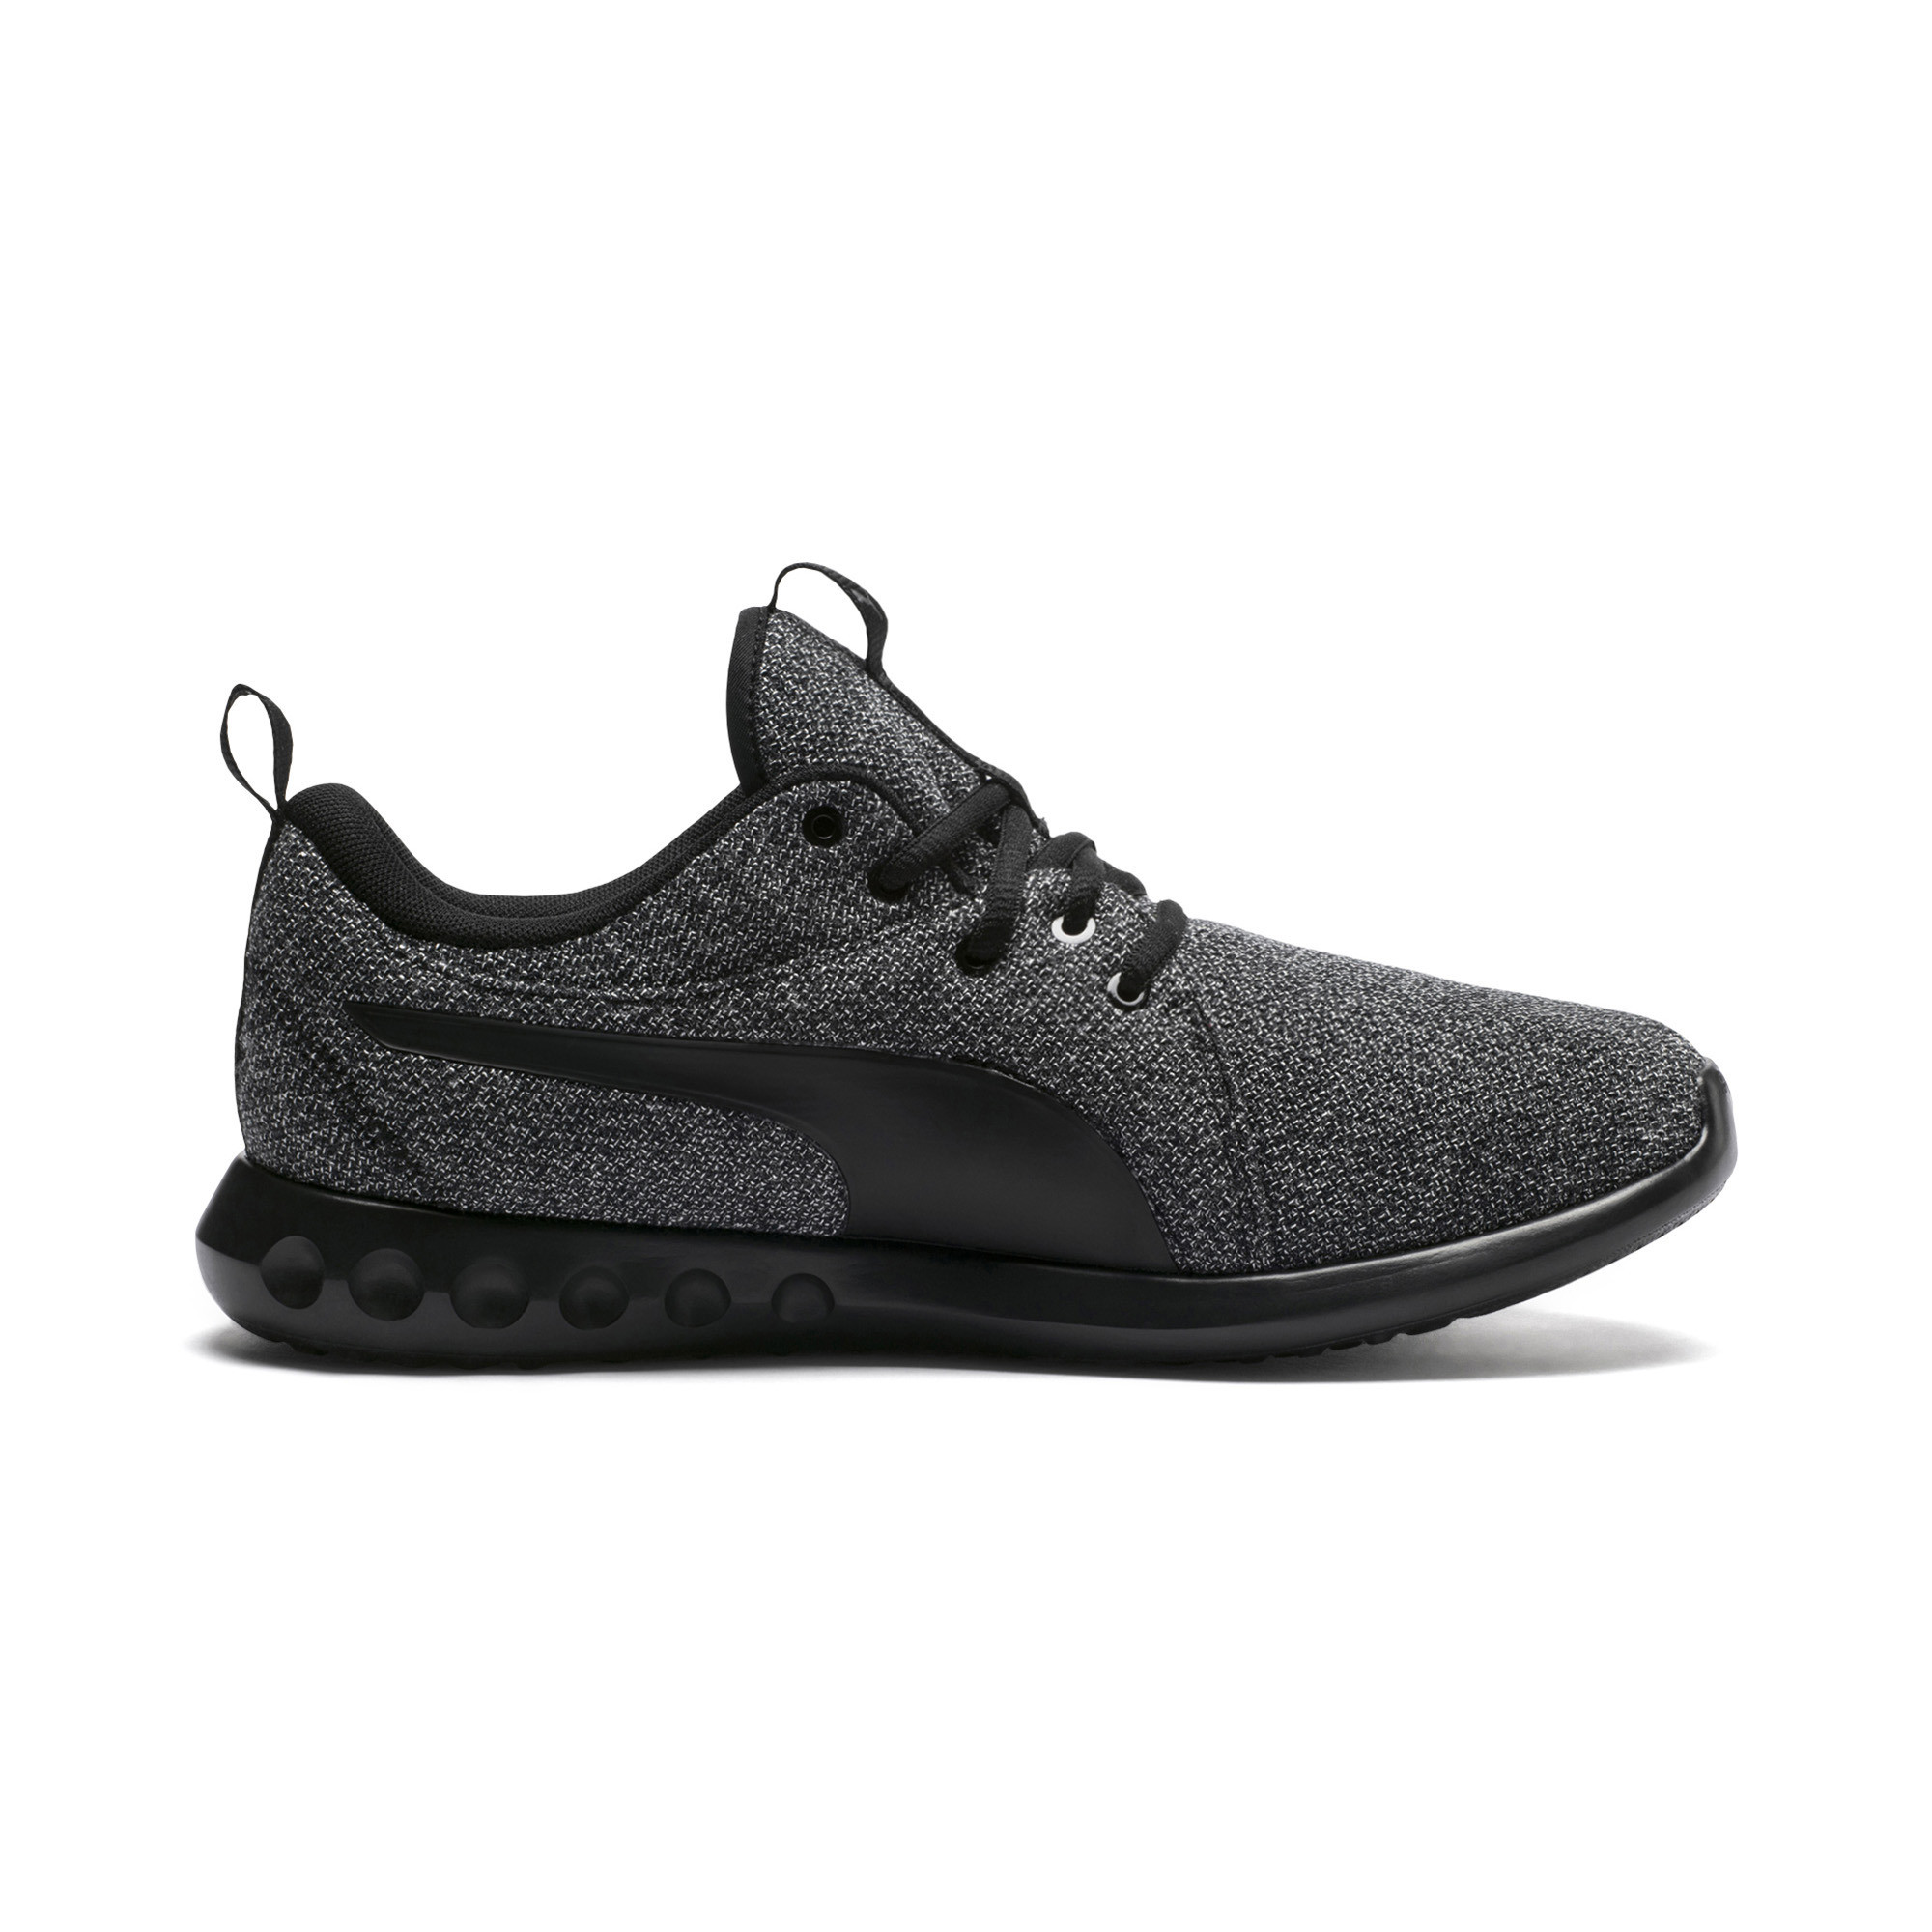 PUMA-Men-039-s-Carson-2-Knit-Training-Shoes thumbnail 6